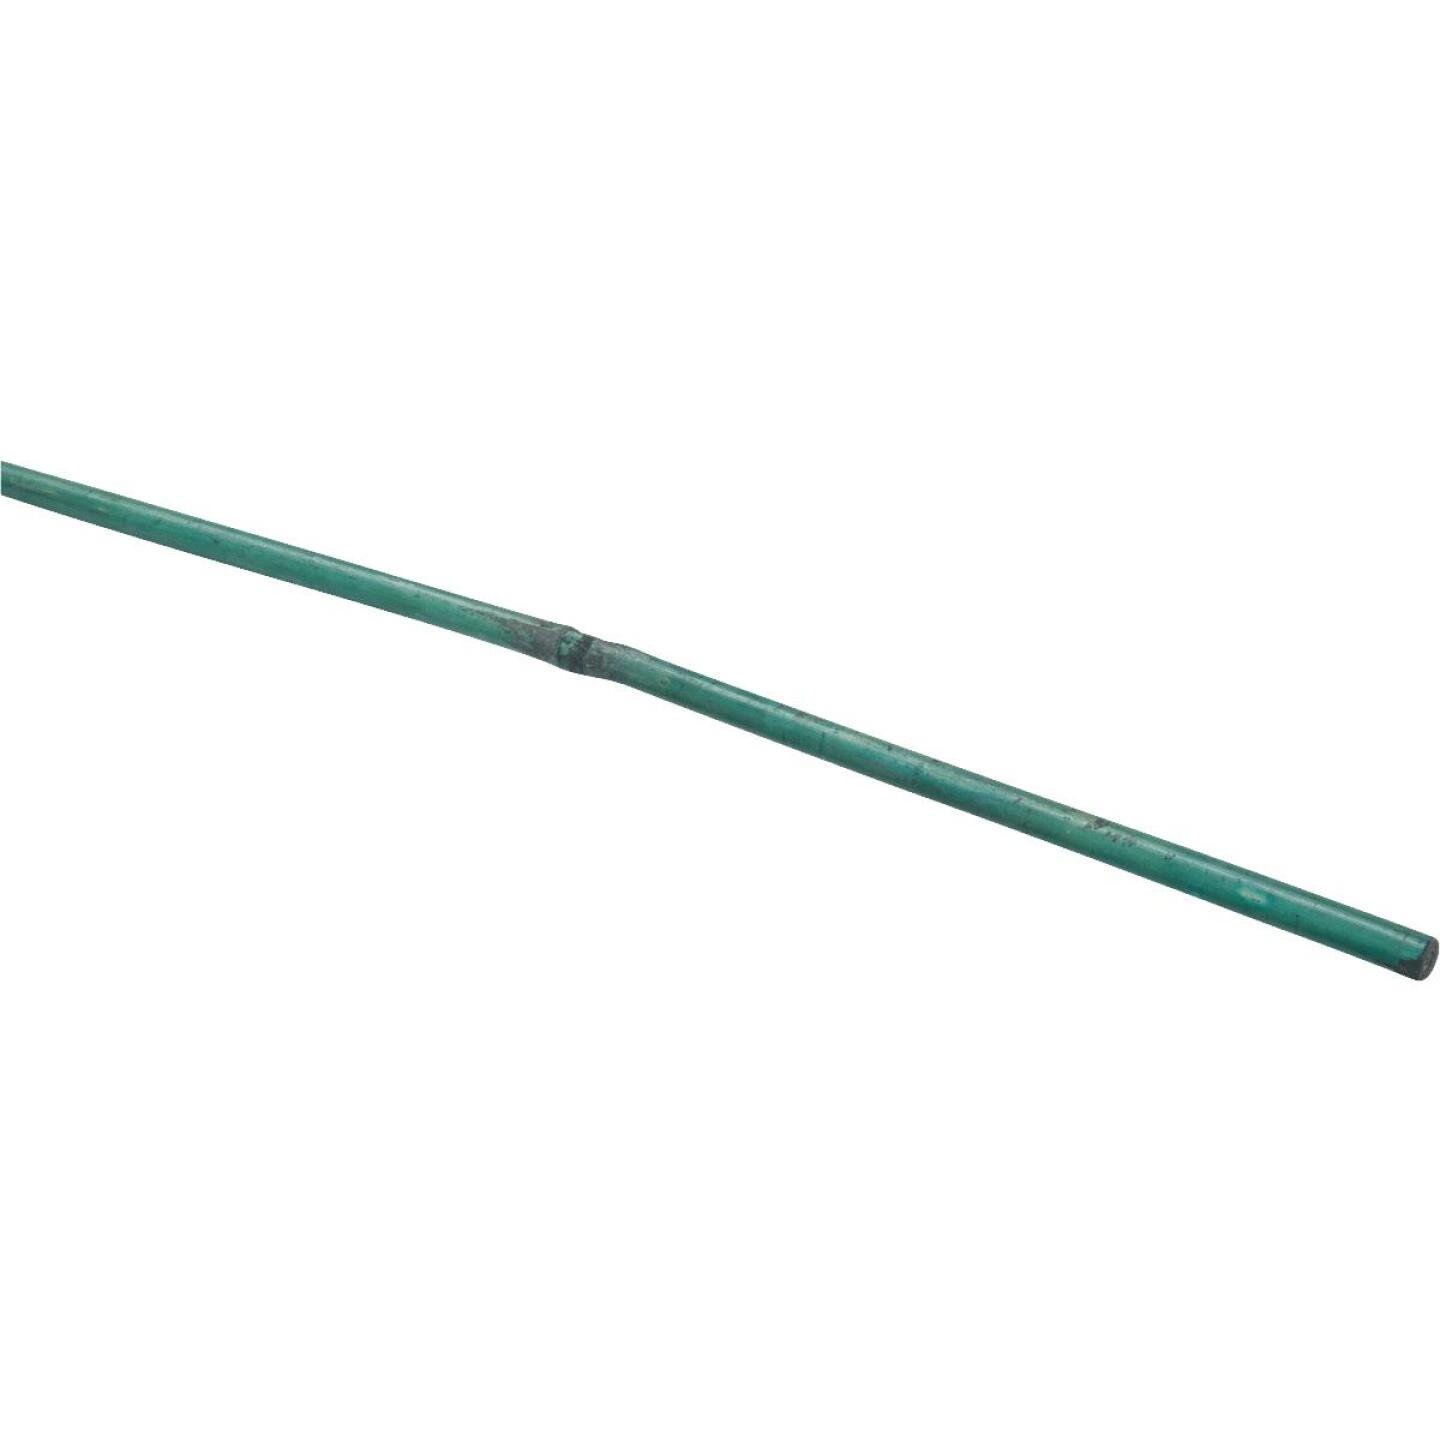 Bond 4 Ft. Green Bamboo Plant Stakes (25-Pack) Image 20